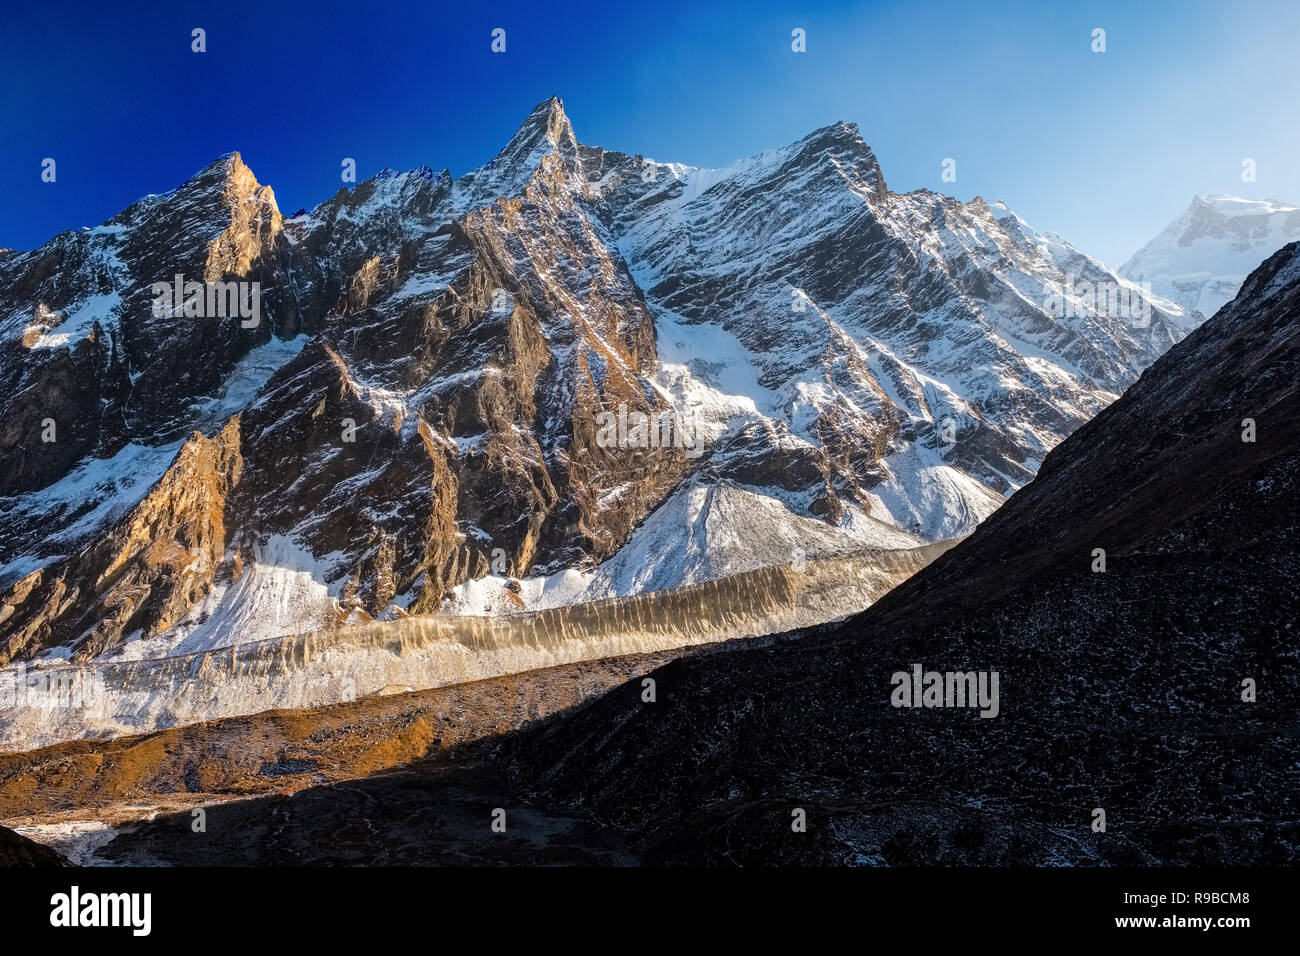 Jagged snow covered peaks typical of the scenery on the Manaslu Circuit trek in the Nepal Himalayas - Stock Image